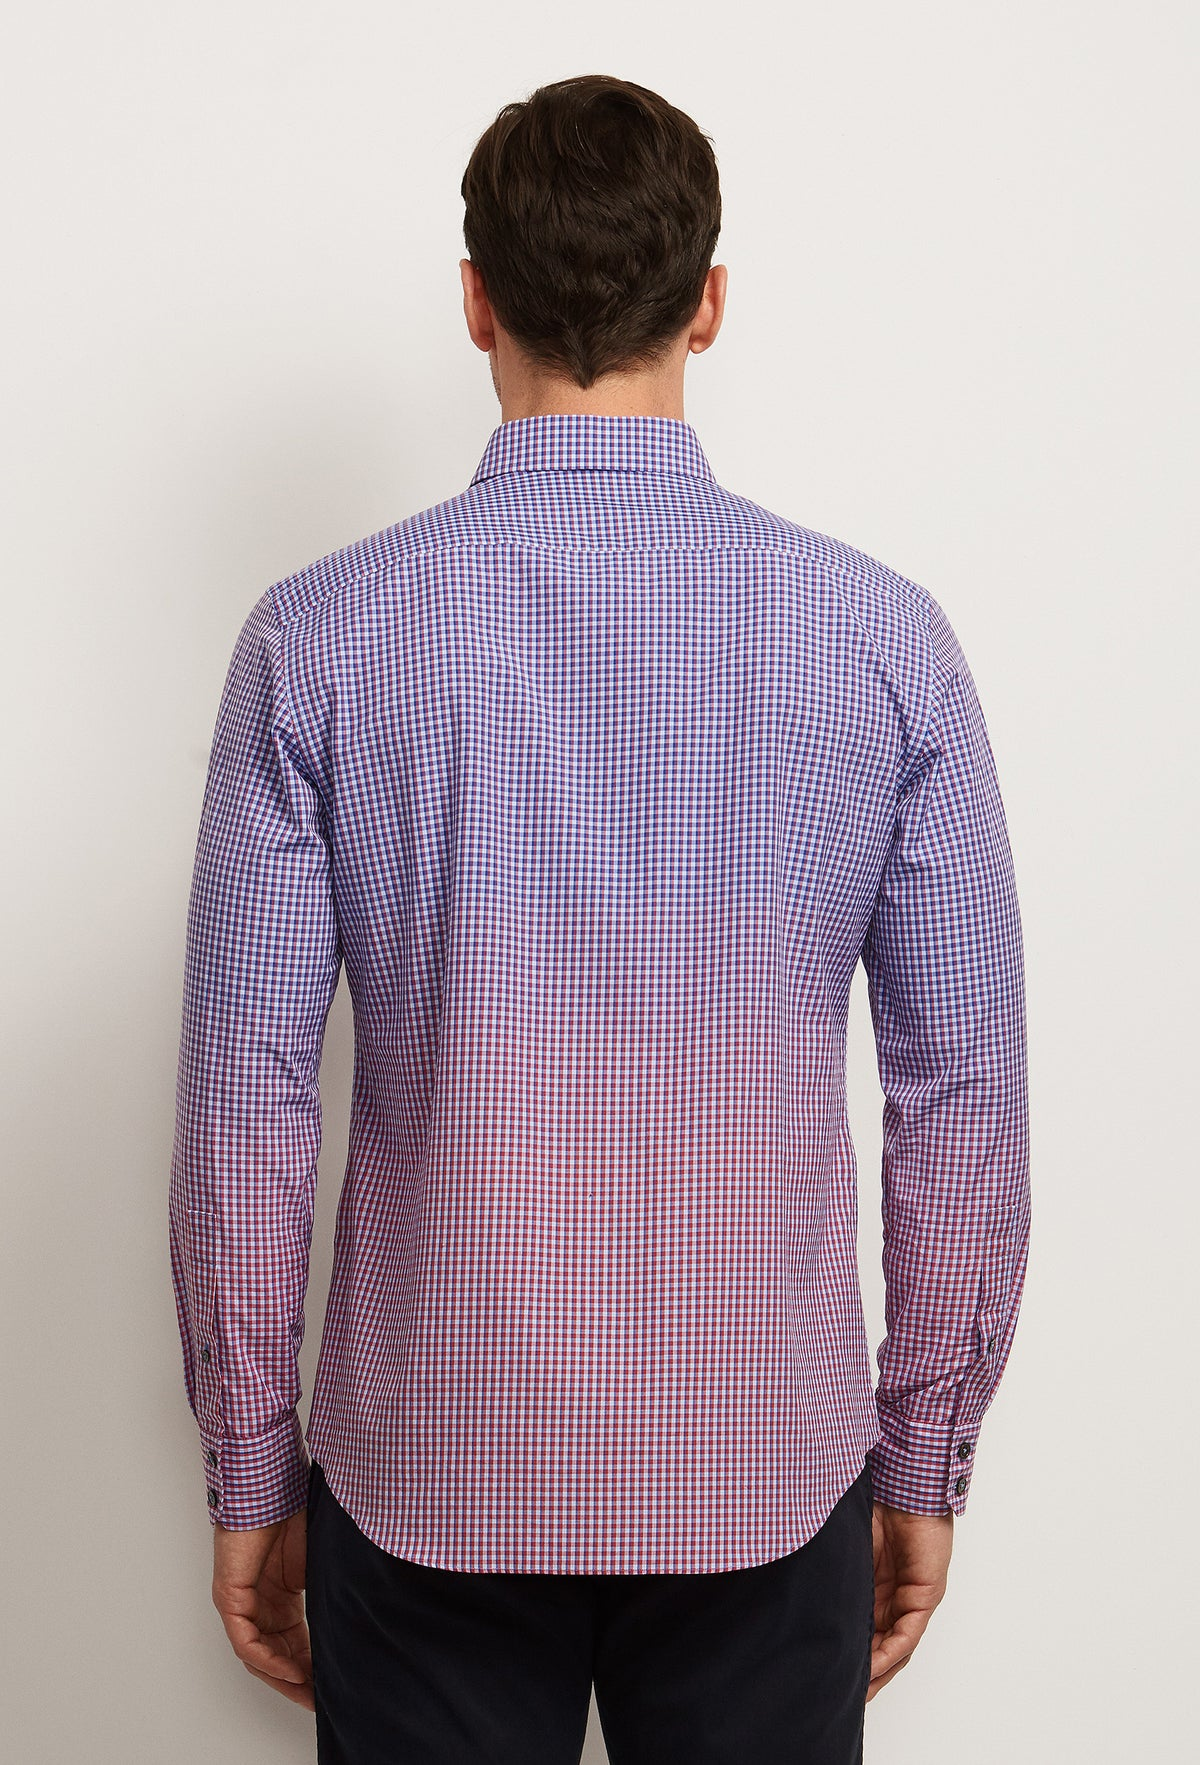 ZACHARY-PRELL-Germain-ShirtsModern-Menswear-New-Dress-Code